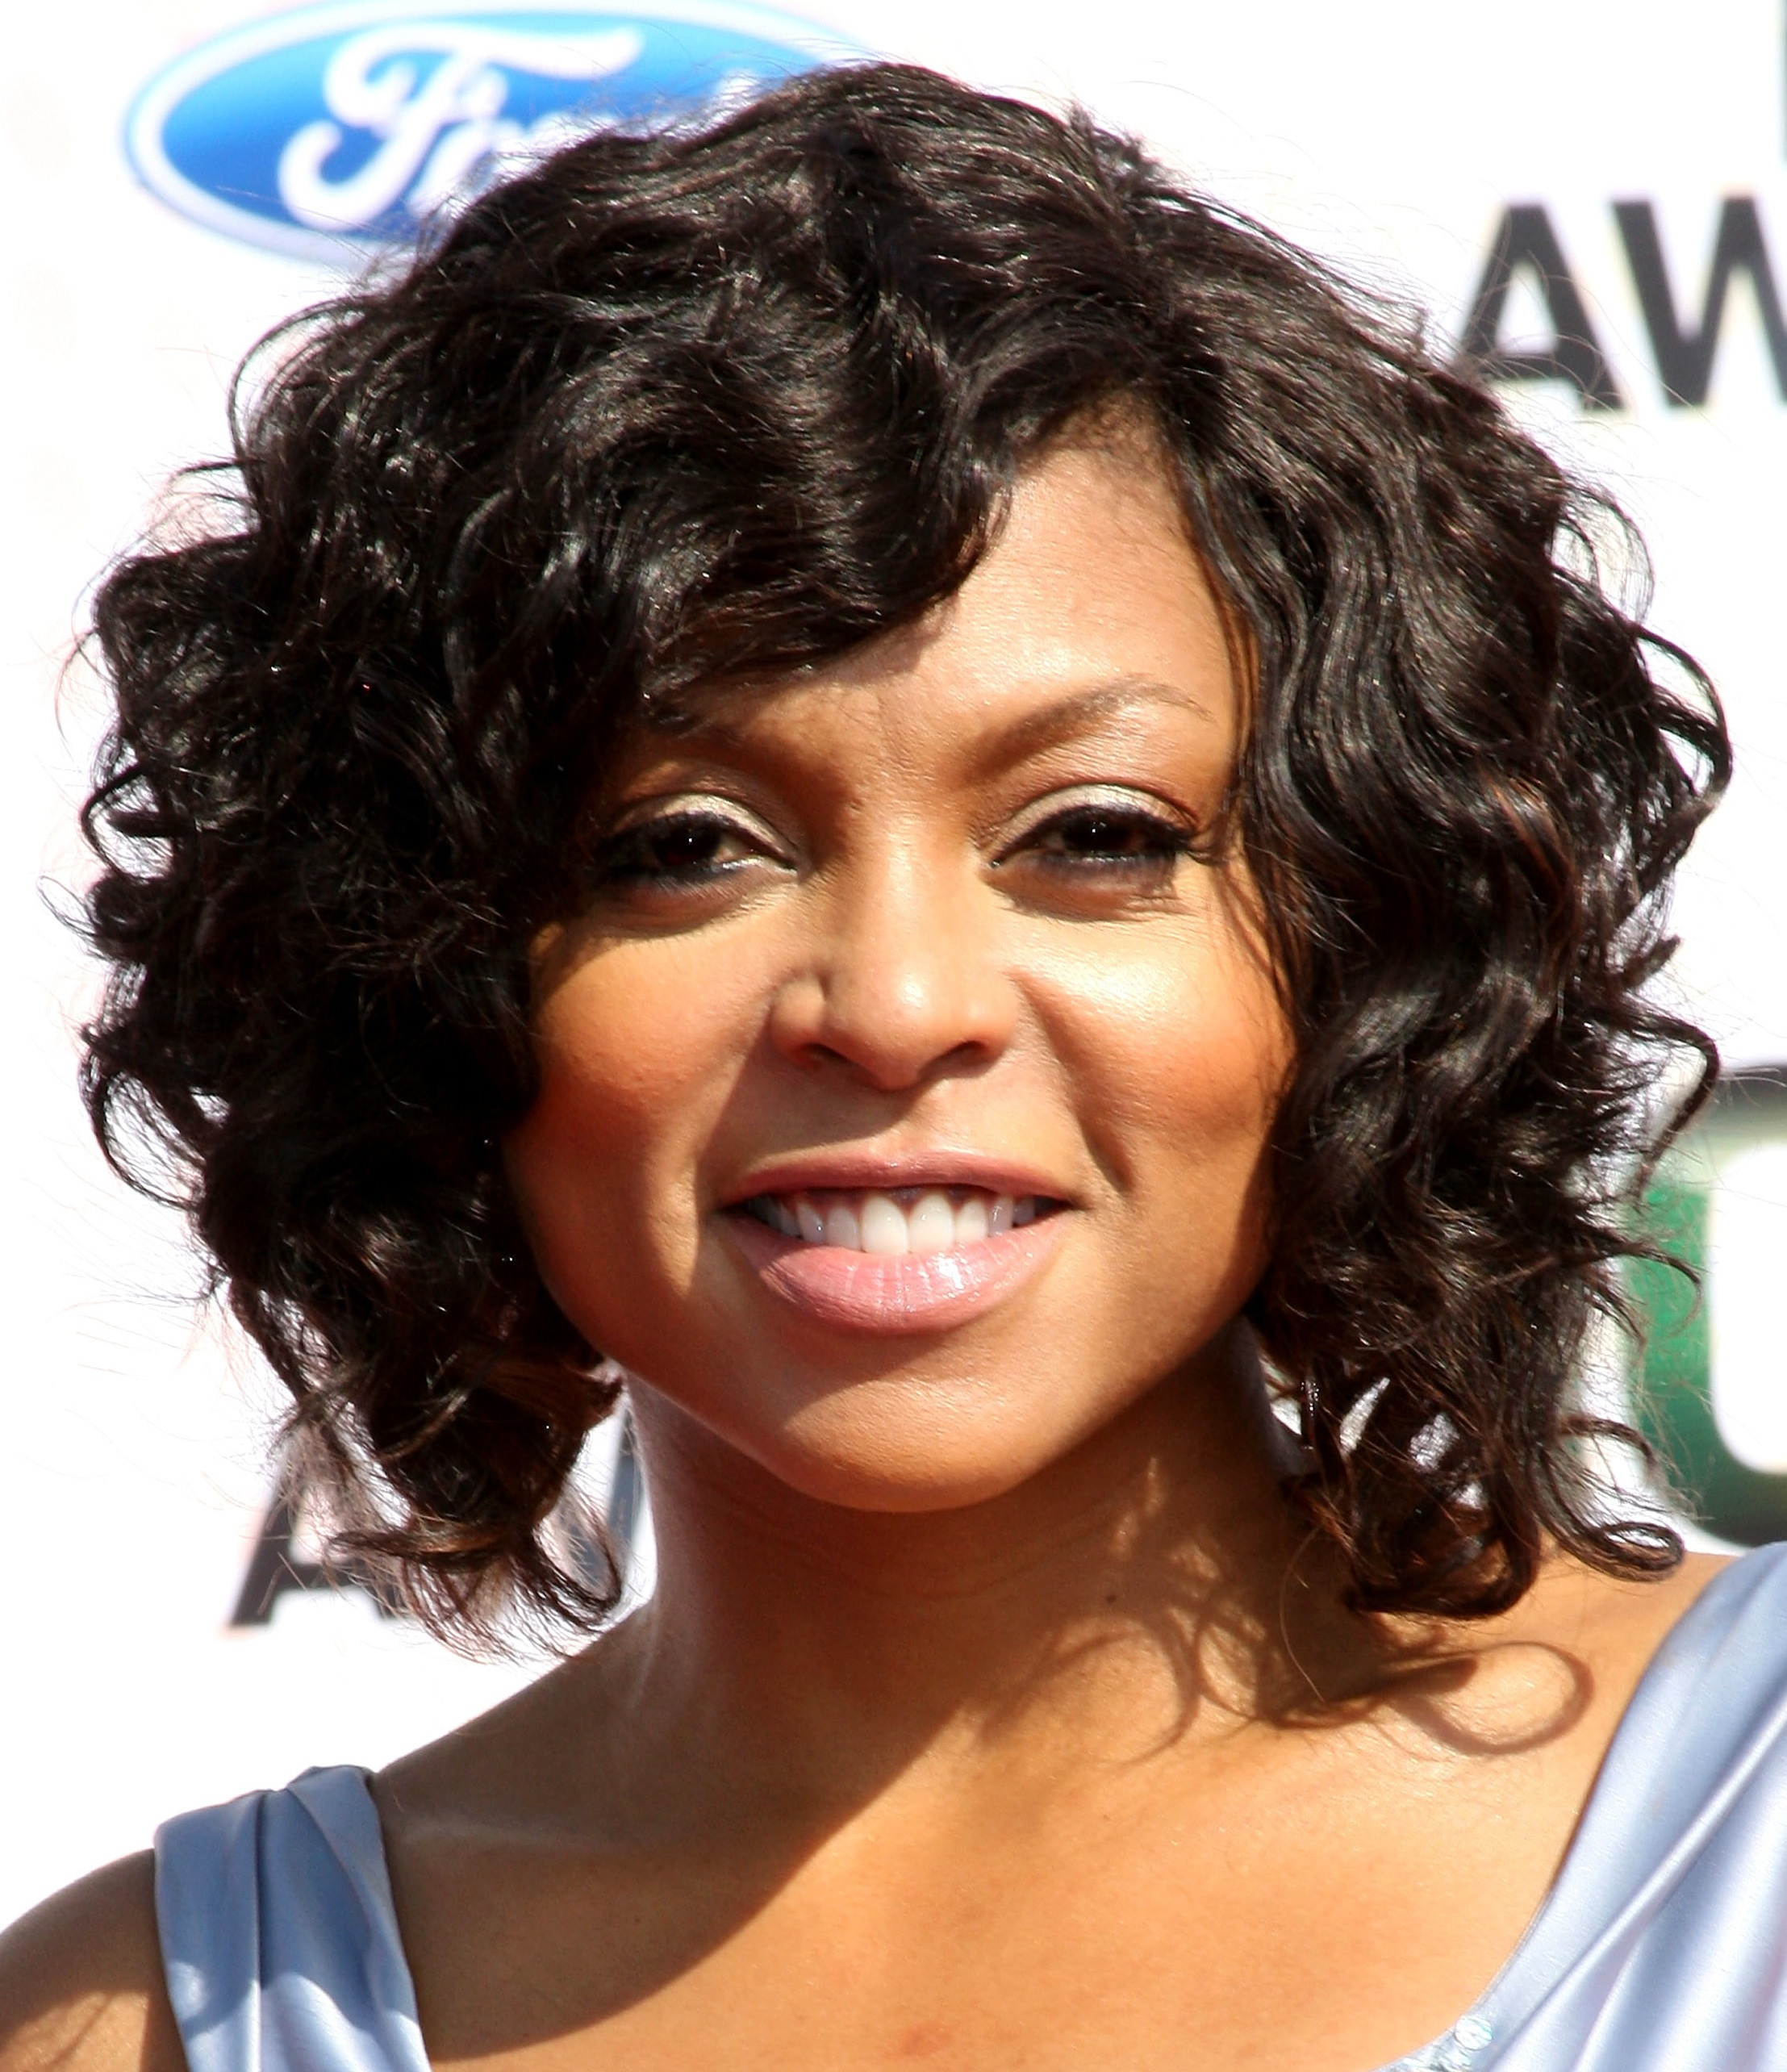 Swell Top 25 Short Curly Hairstyles For Black Women Hairstyle Inspiration Daily Dogsangcom